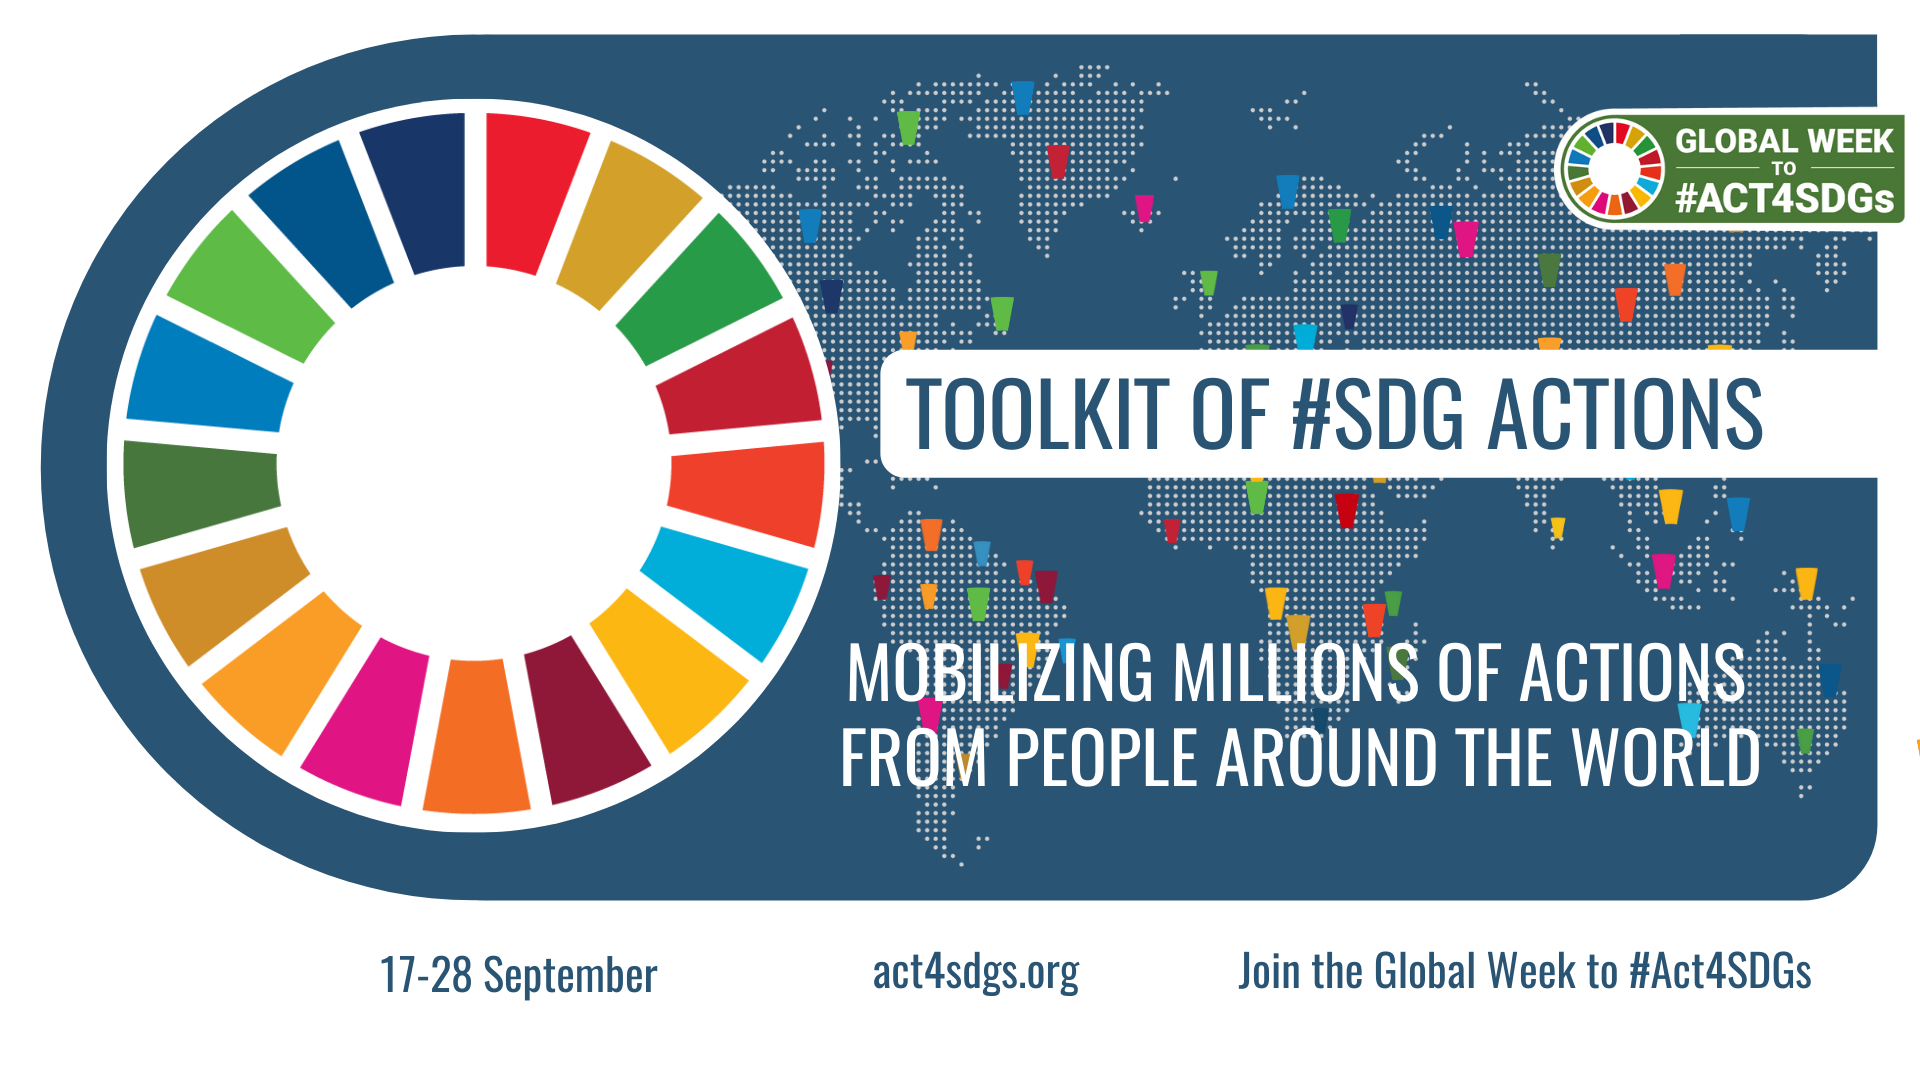 Mobilizing millions of actions to #TURNITAROUND for the SDGs